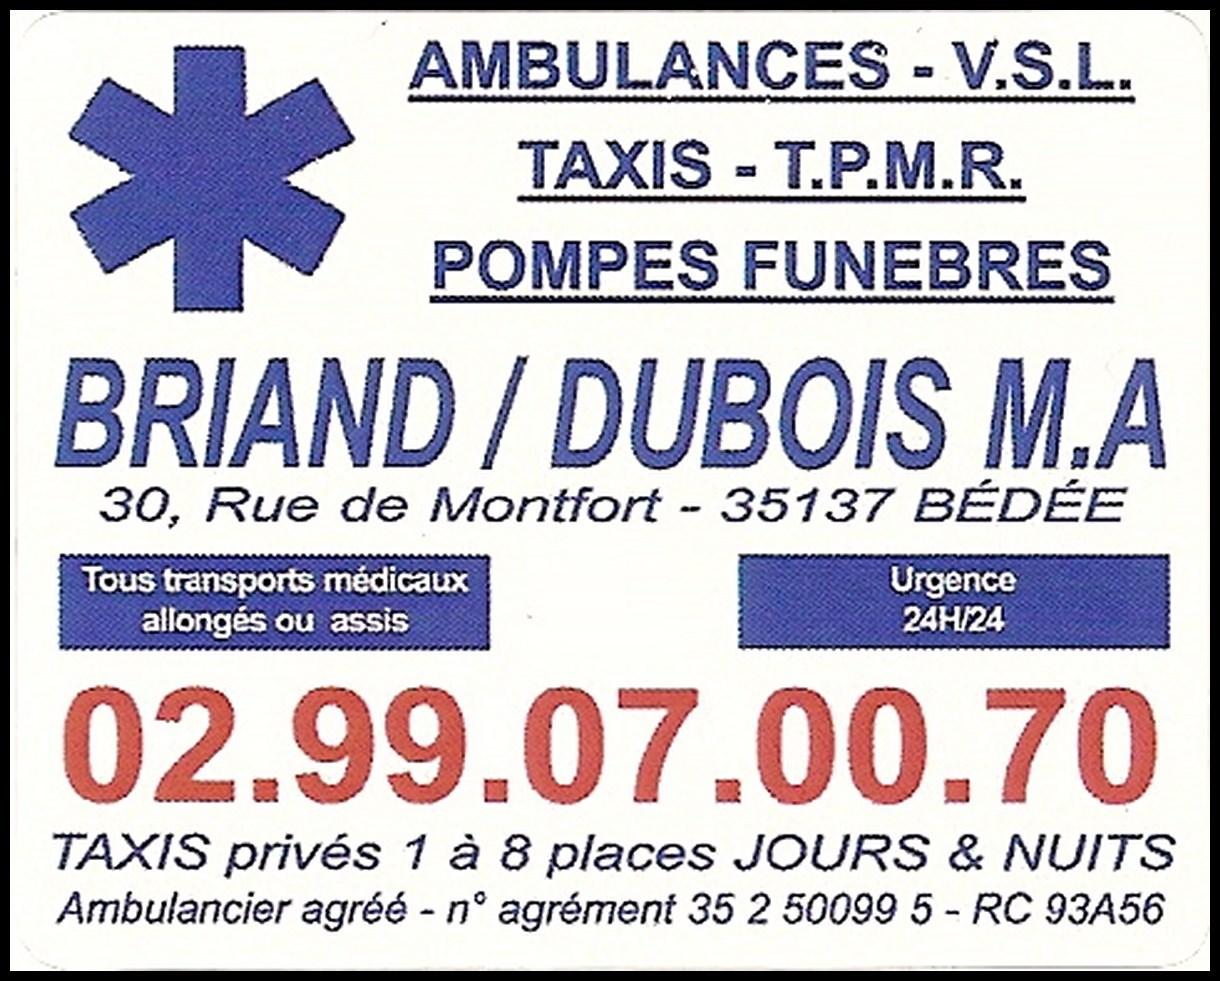 BDNature2017_2017AmbulanceBriantDubois